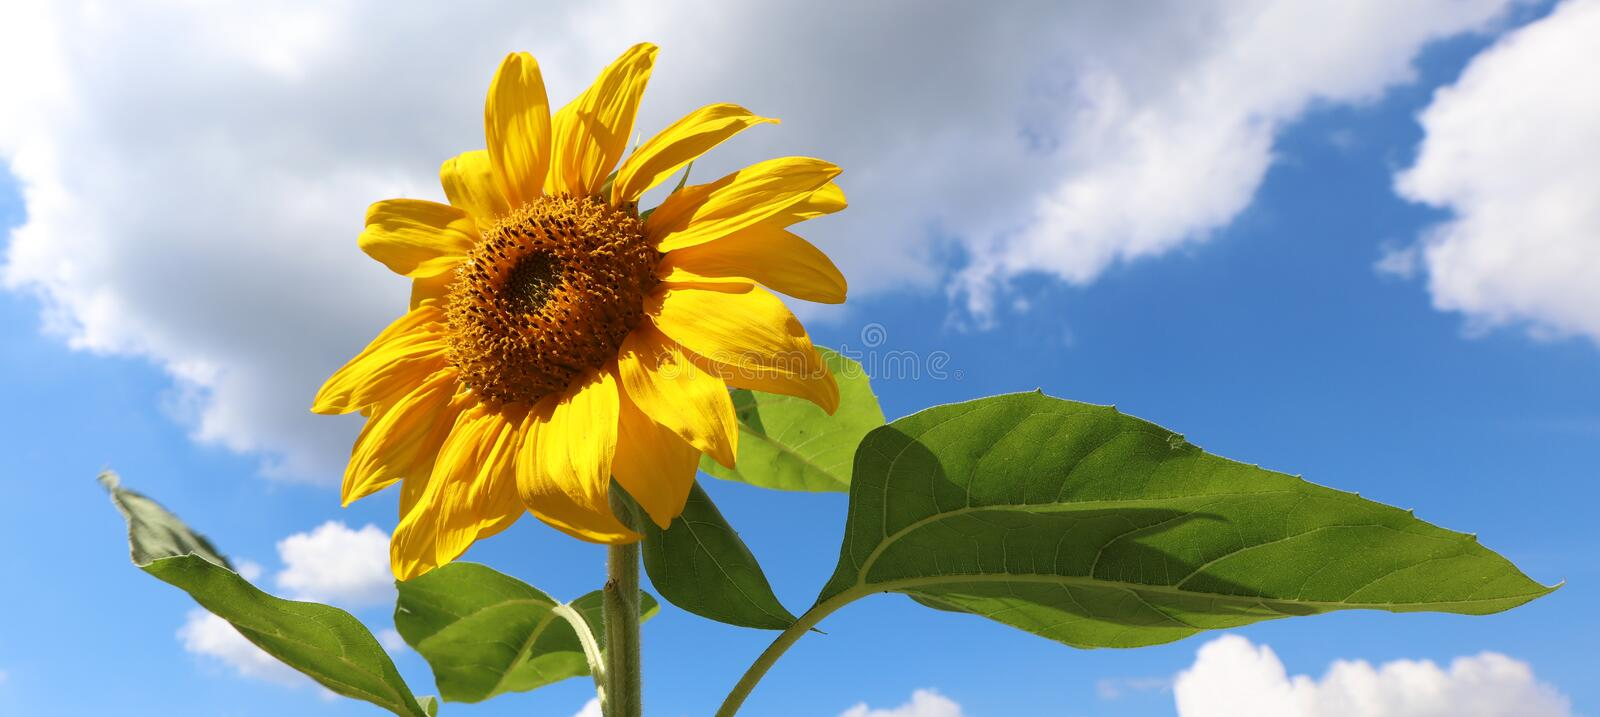 Sunflower beautiful flower yellow and green in background during summer in Michigan royalty free stock photo